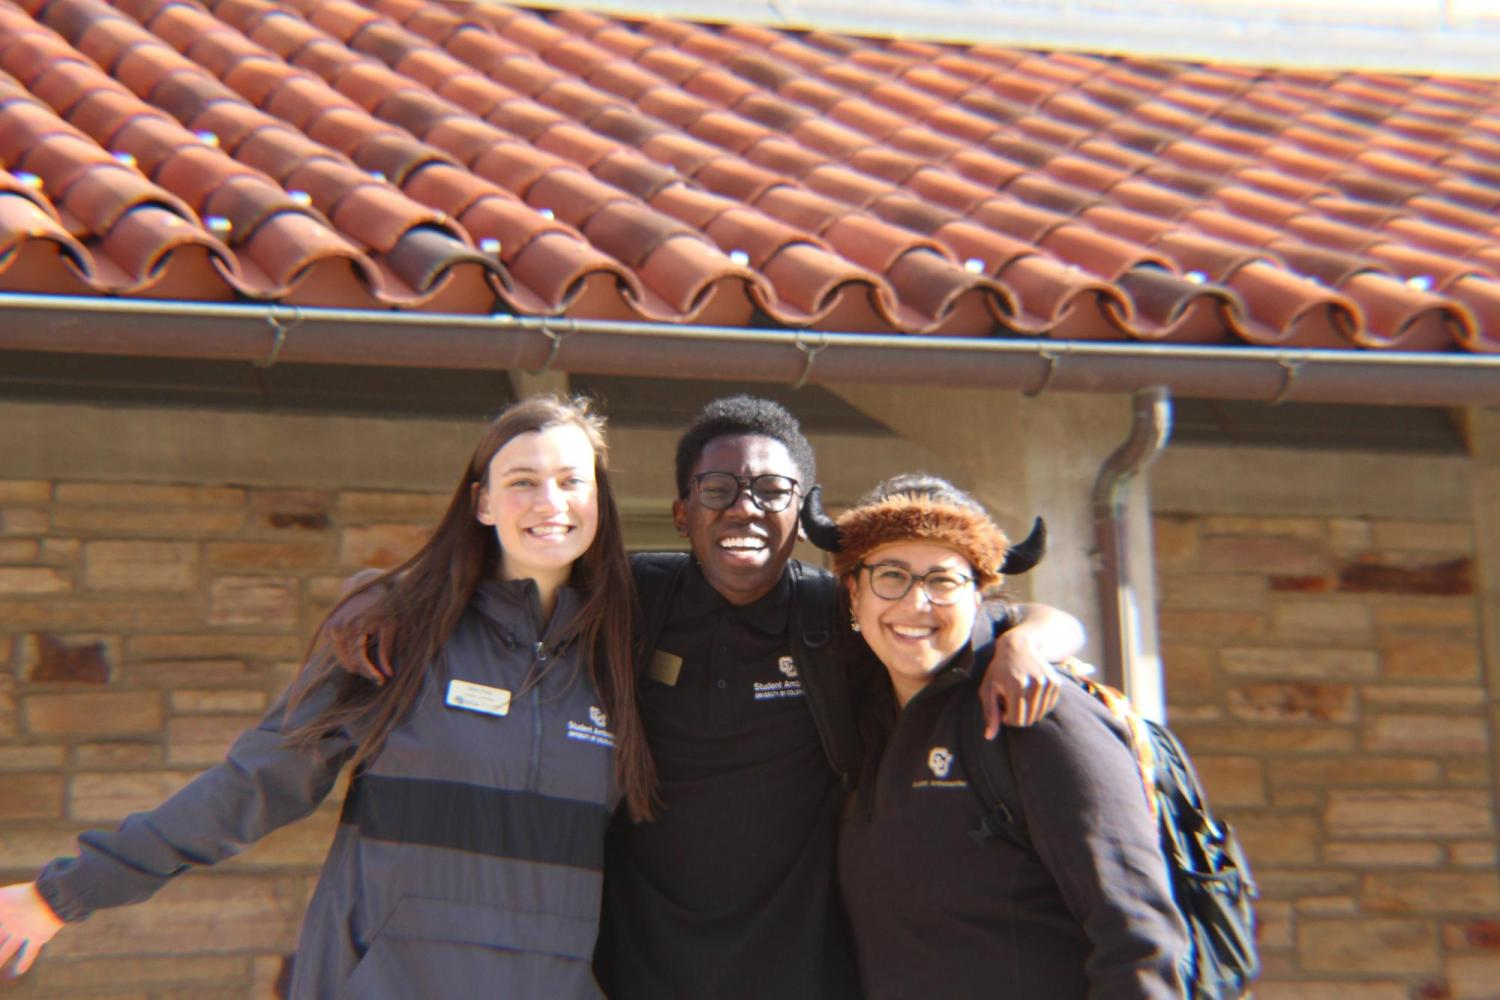 Tour guides helping at Hallett Hall